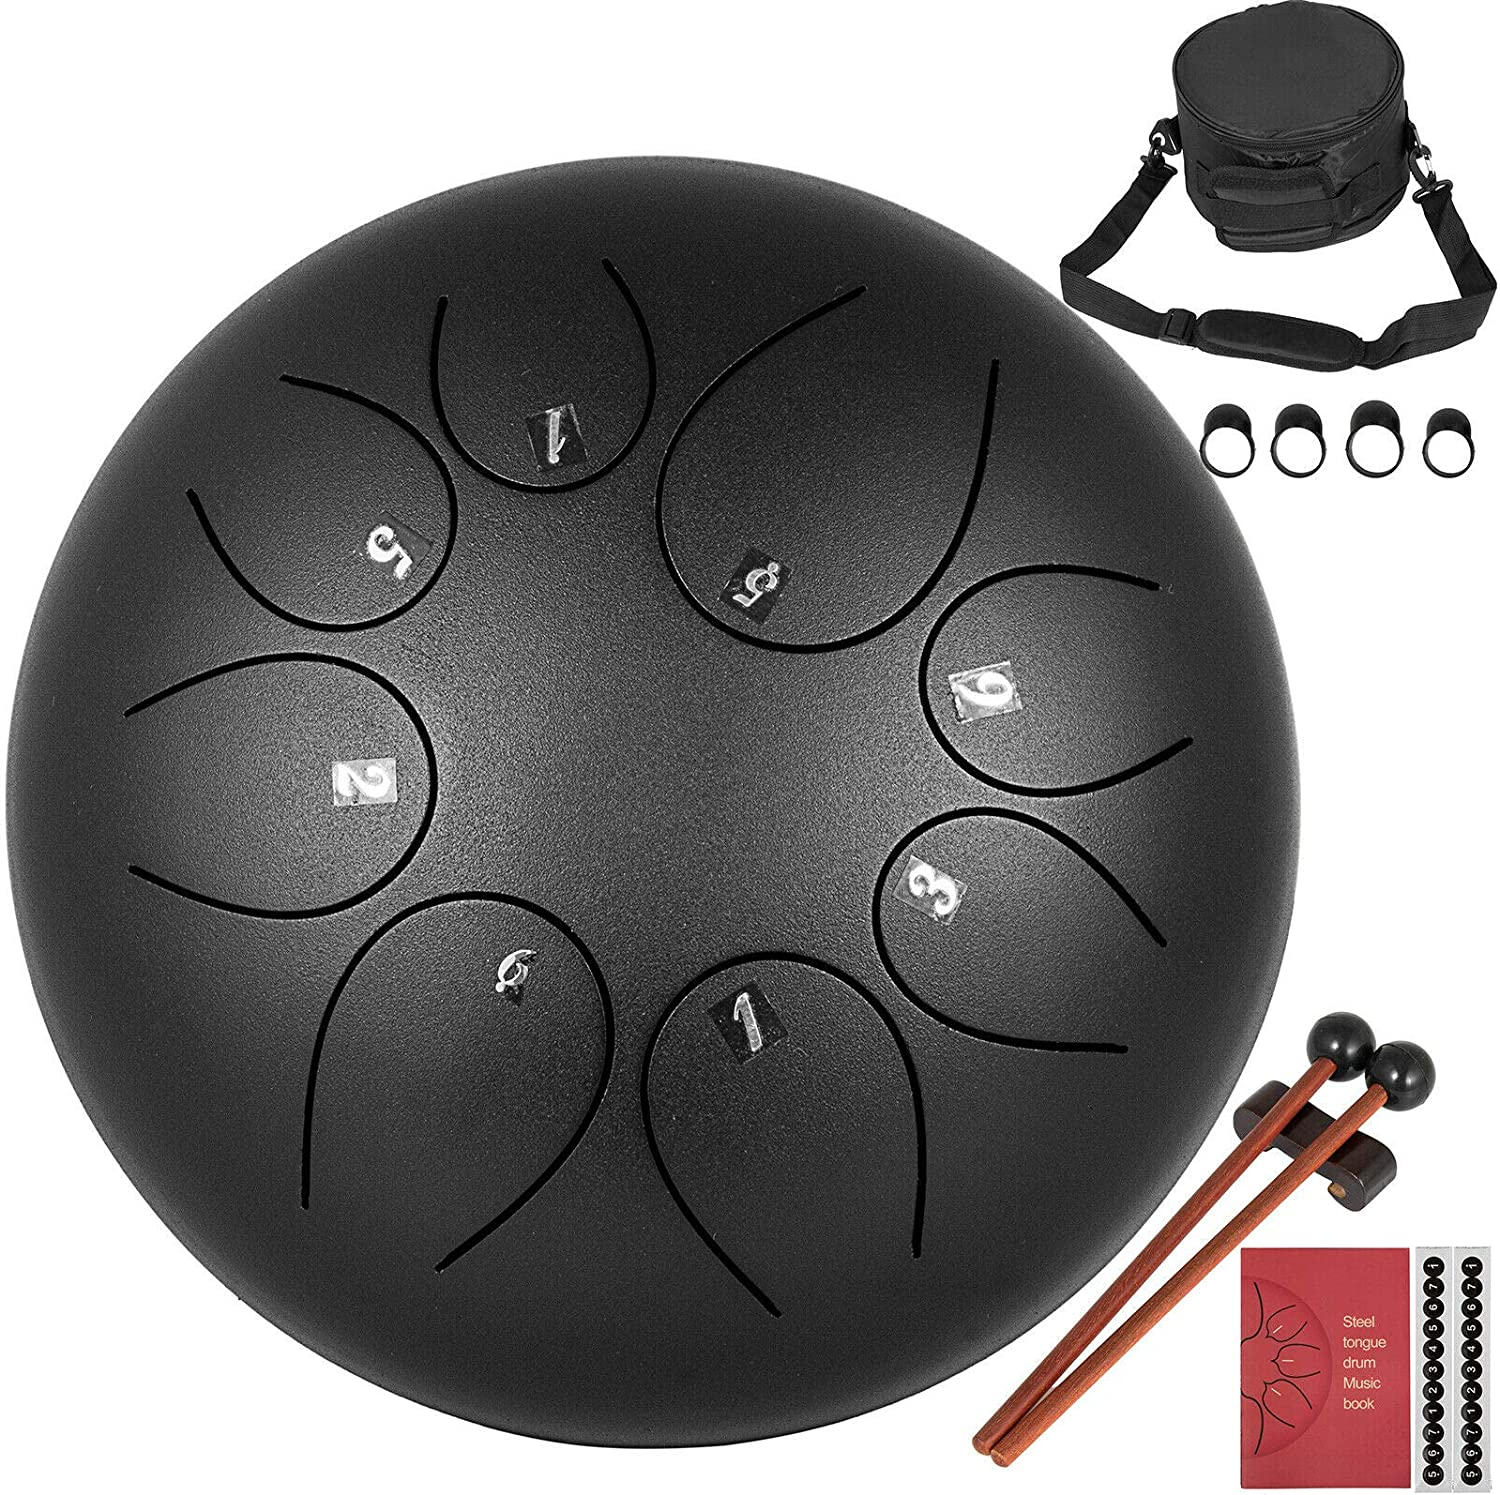 BuoQua Steel Tongue Drum 8 Notes 8 Inches Handpan Steel Drum Black Handpan Drum Hand Drums Percussion Instrument with Bag